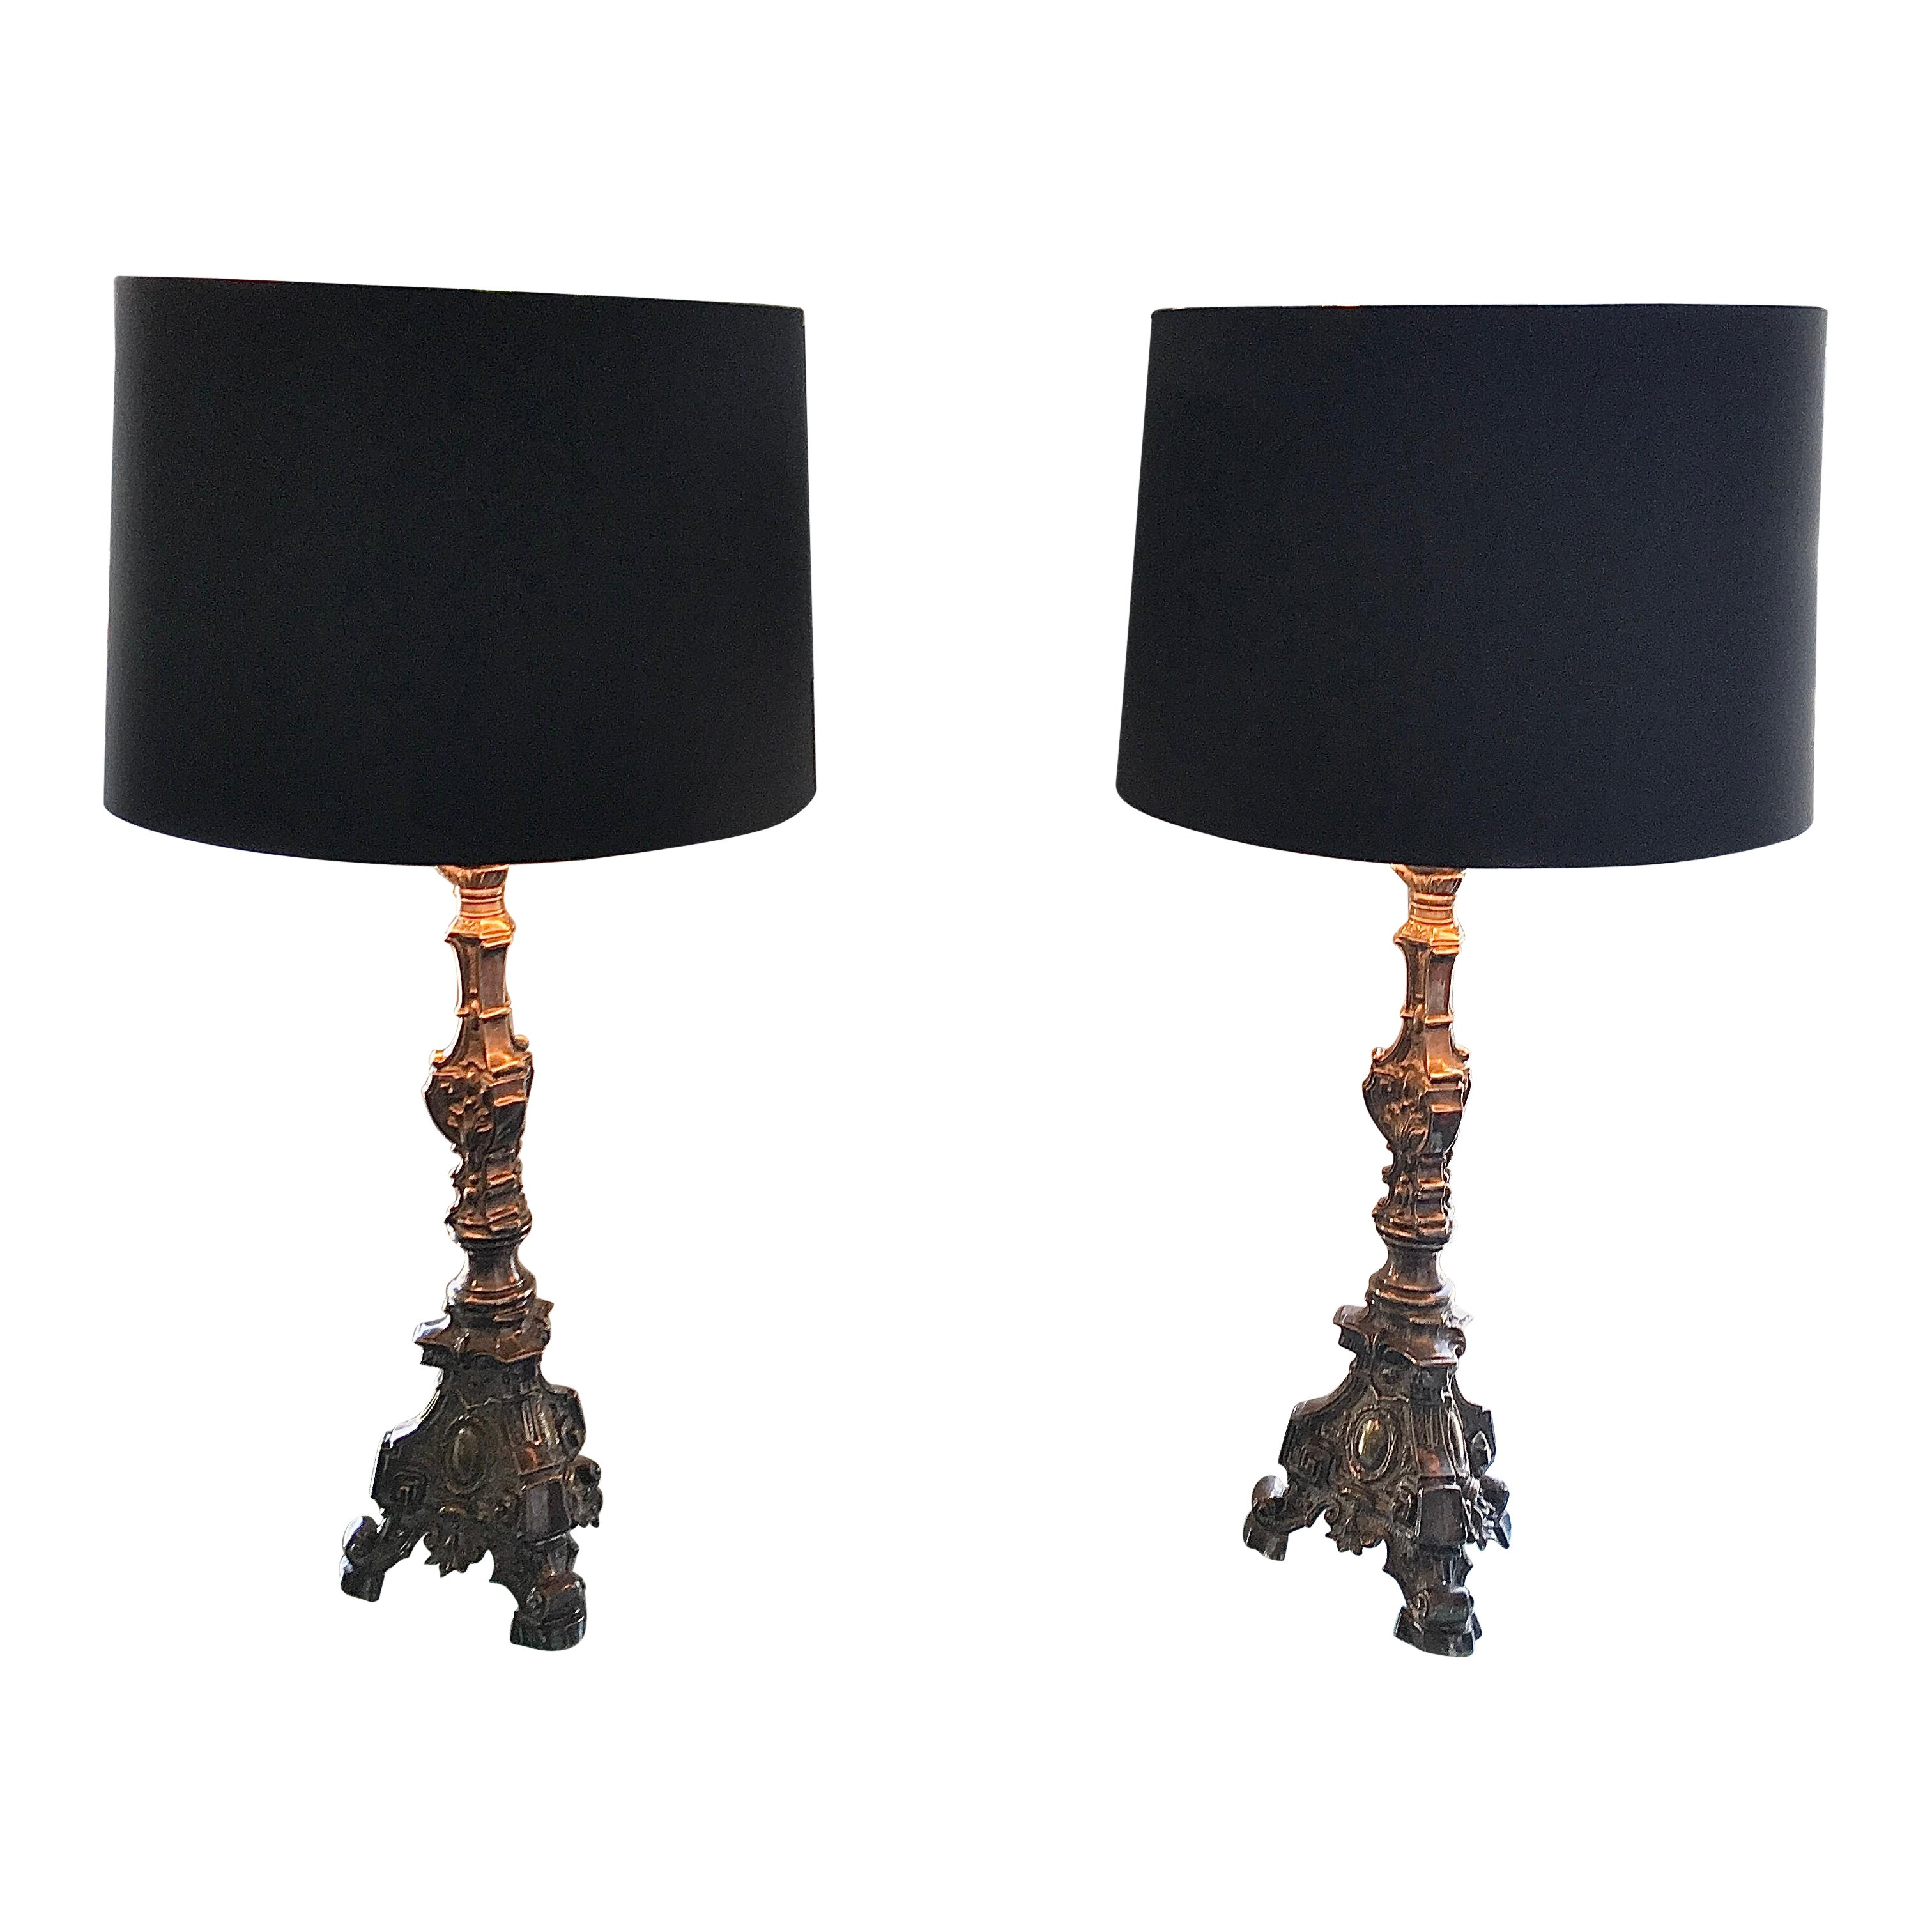 Pair of Early 20th Century Candelabras